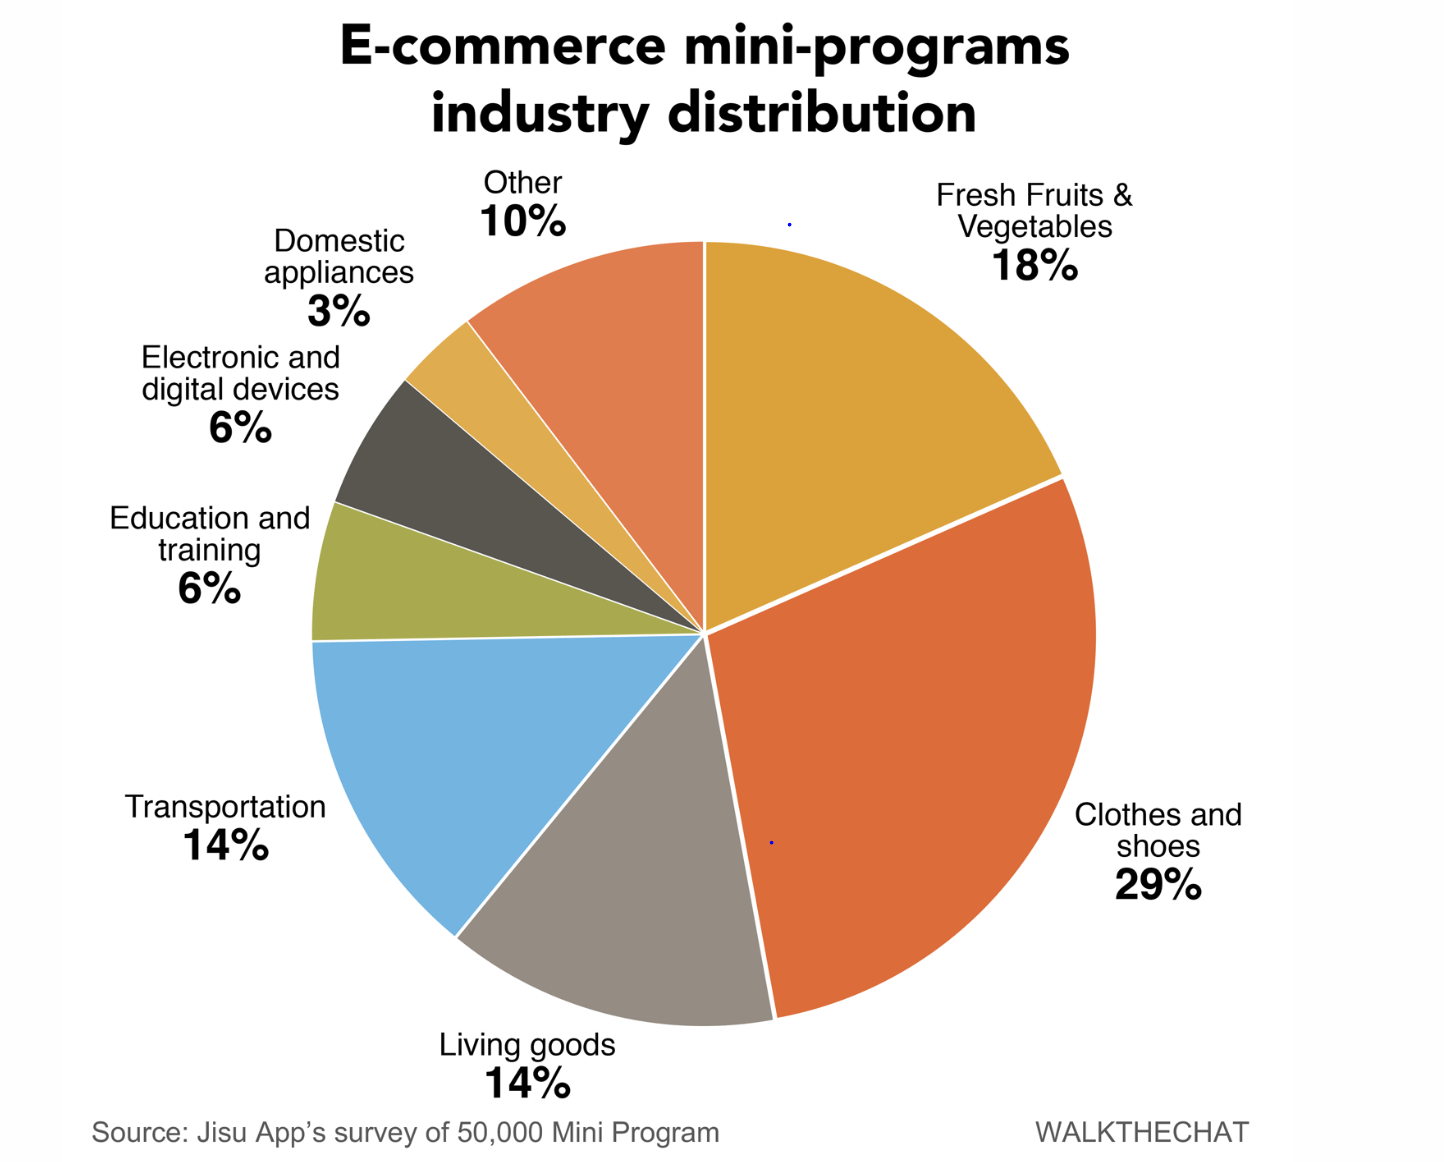 ecommerce mini programs industry distribution in WeChat super app